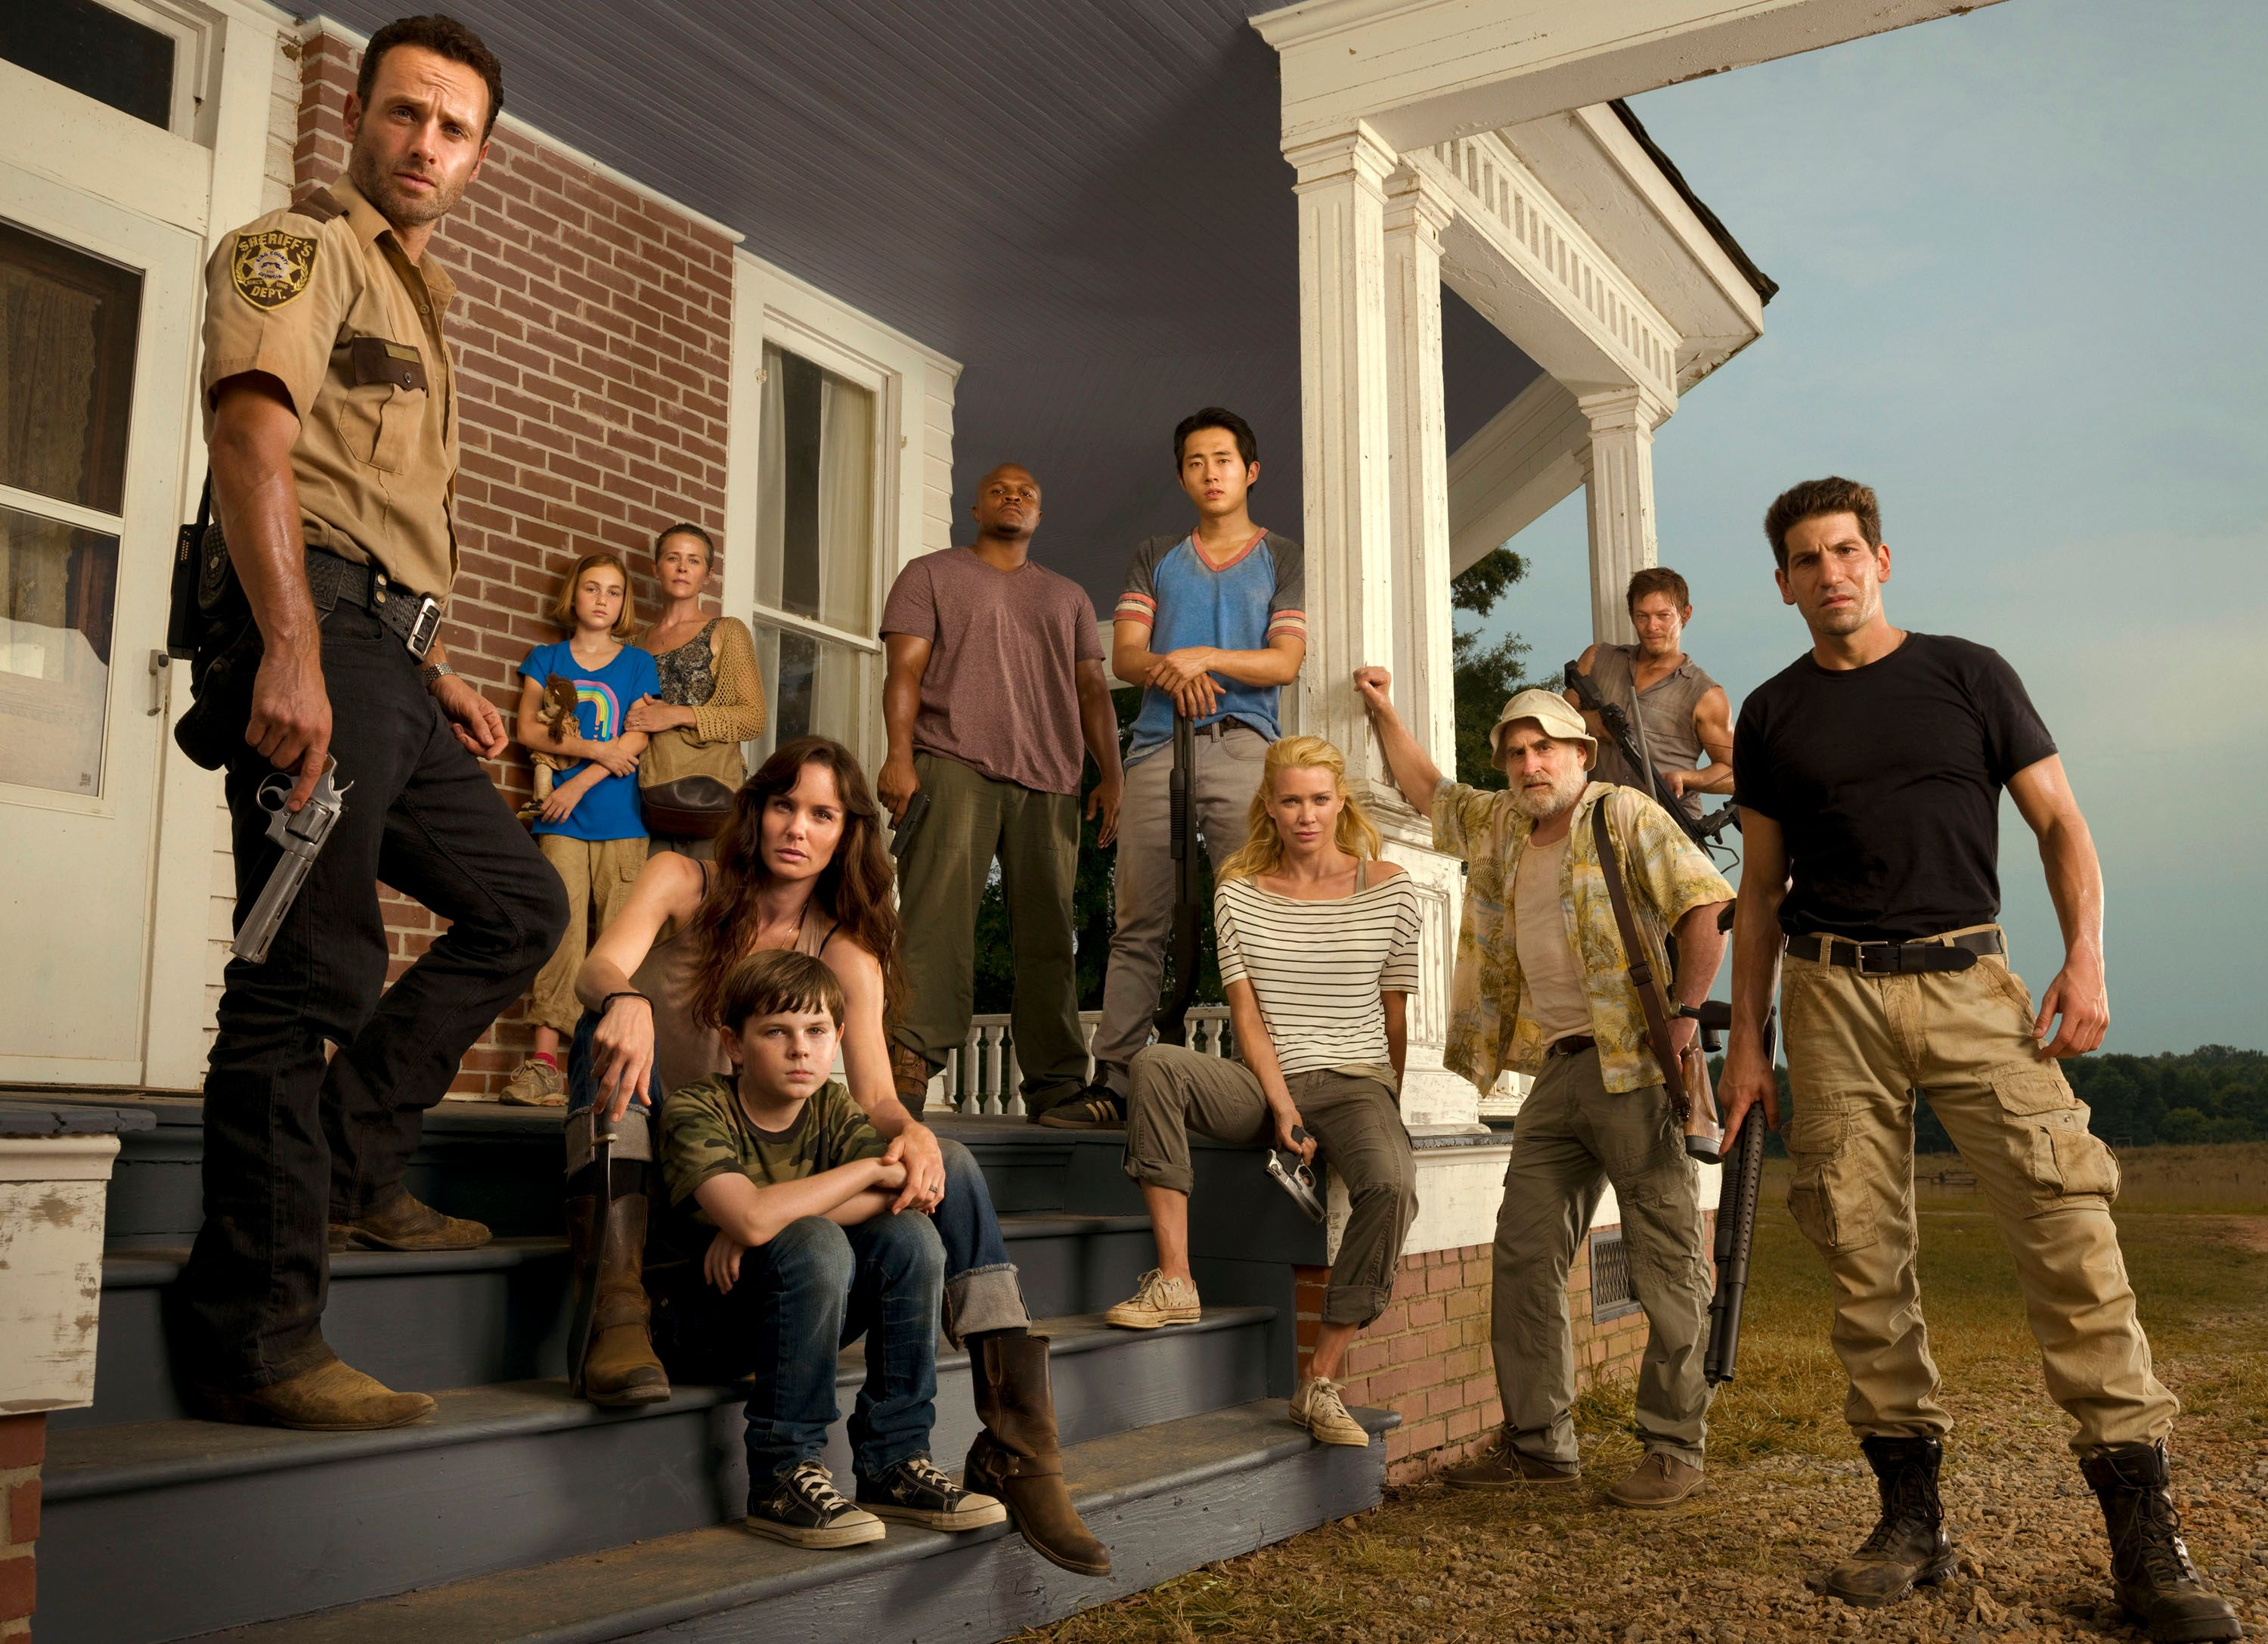 Walking Dead Season 1 Cast Photo The-walking-dead-cast-season-2